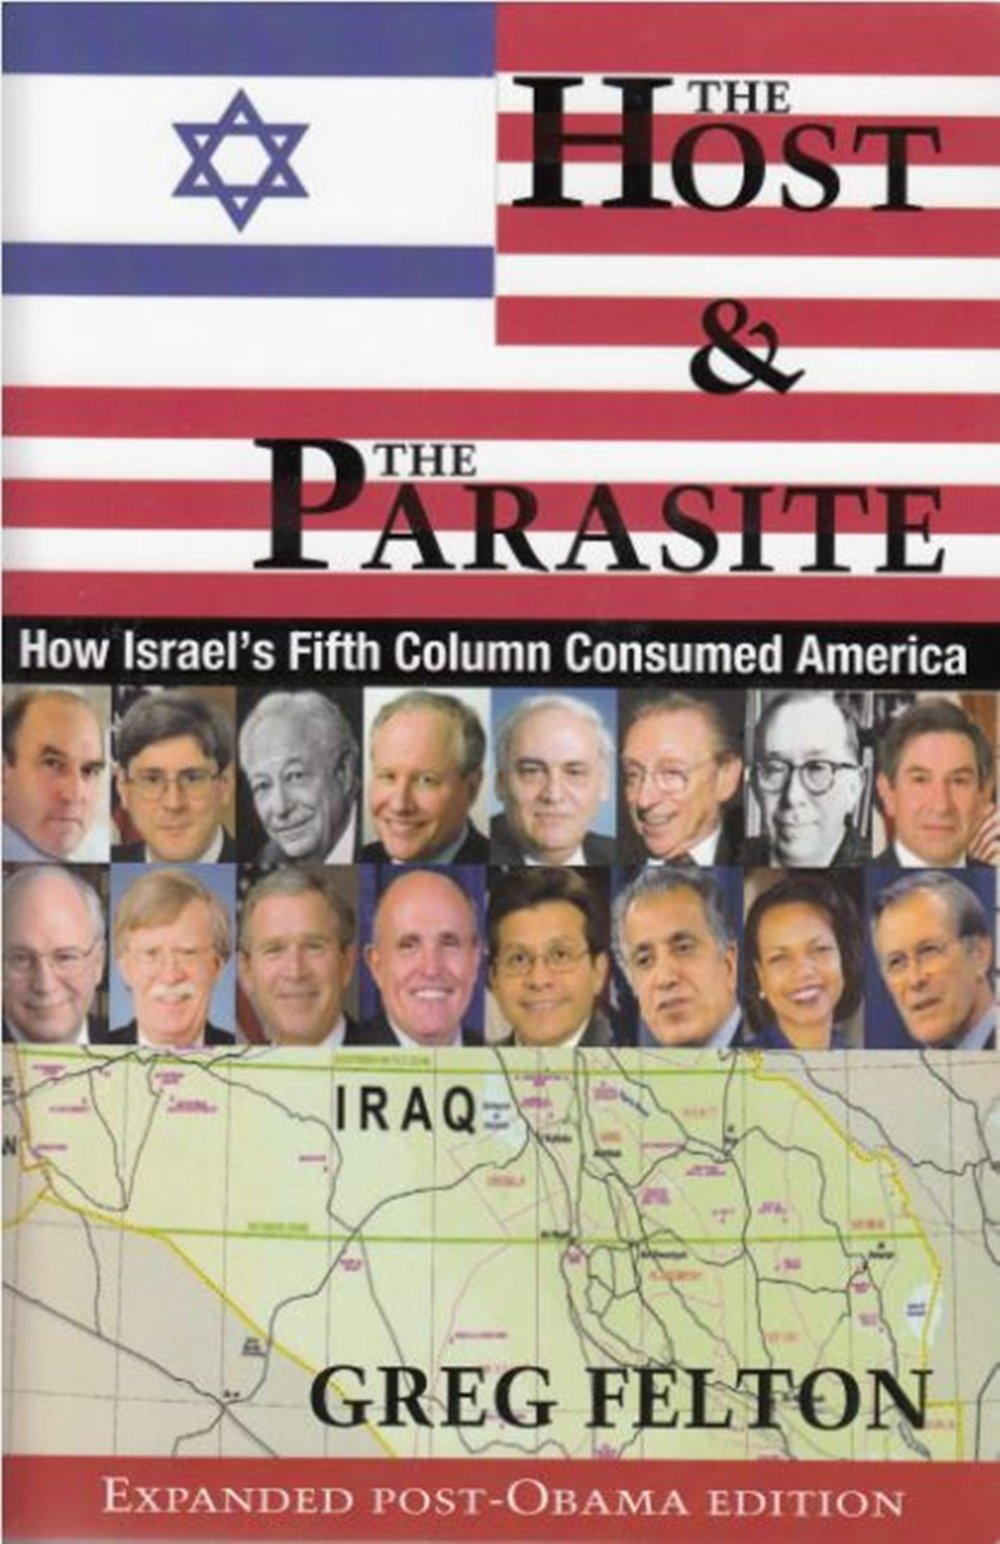 The Host and the Parasite - How Israel's Fifth Column Consumed America